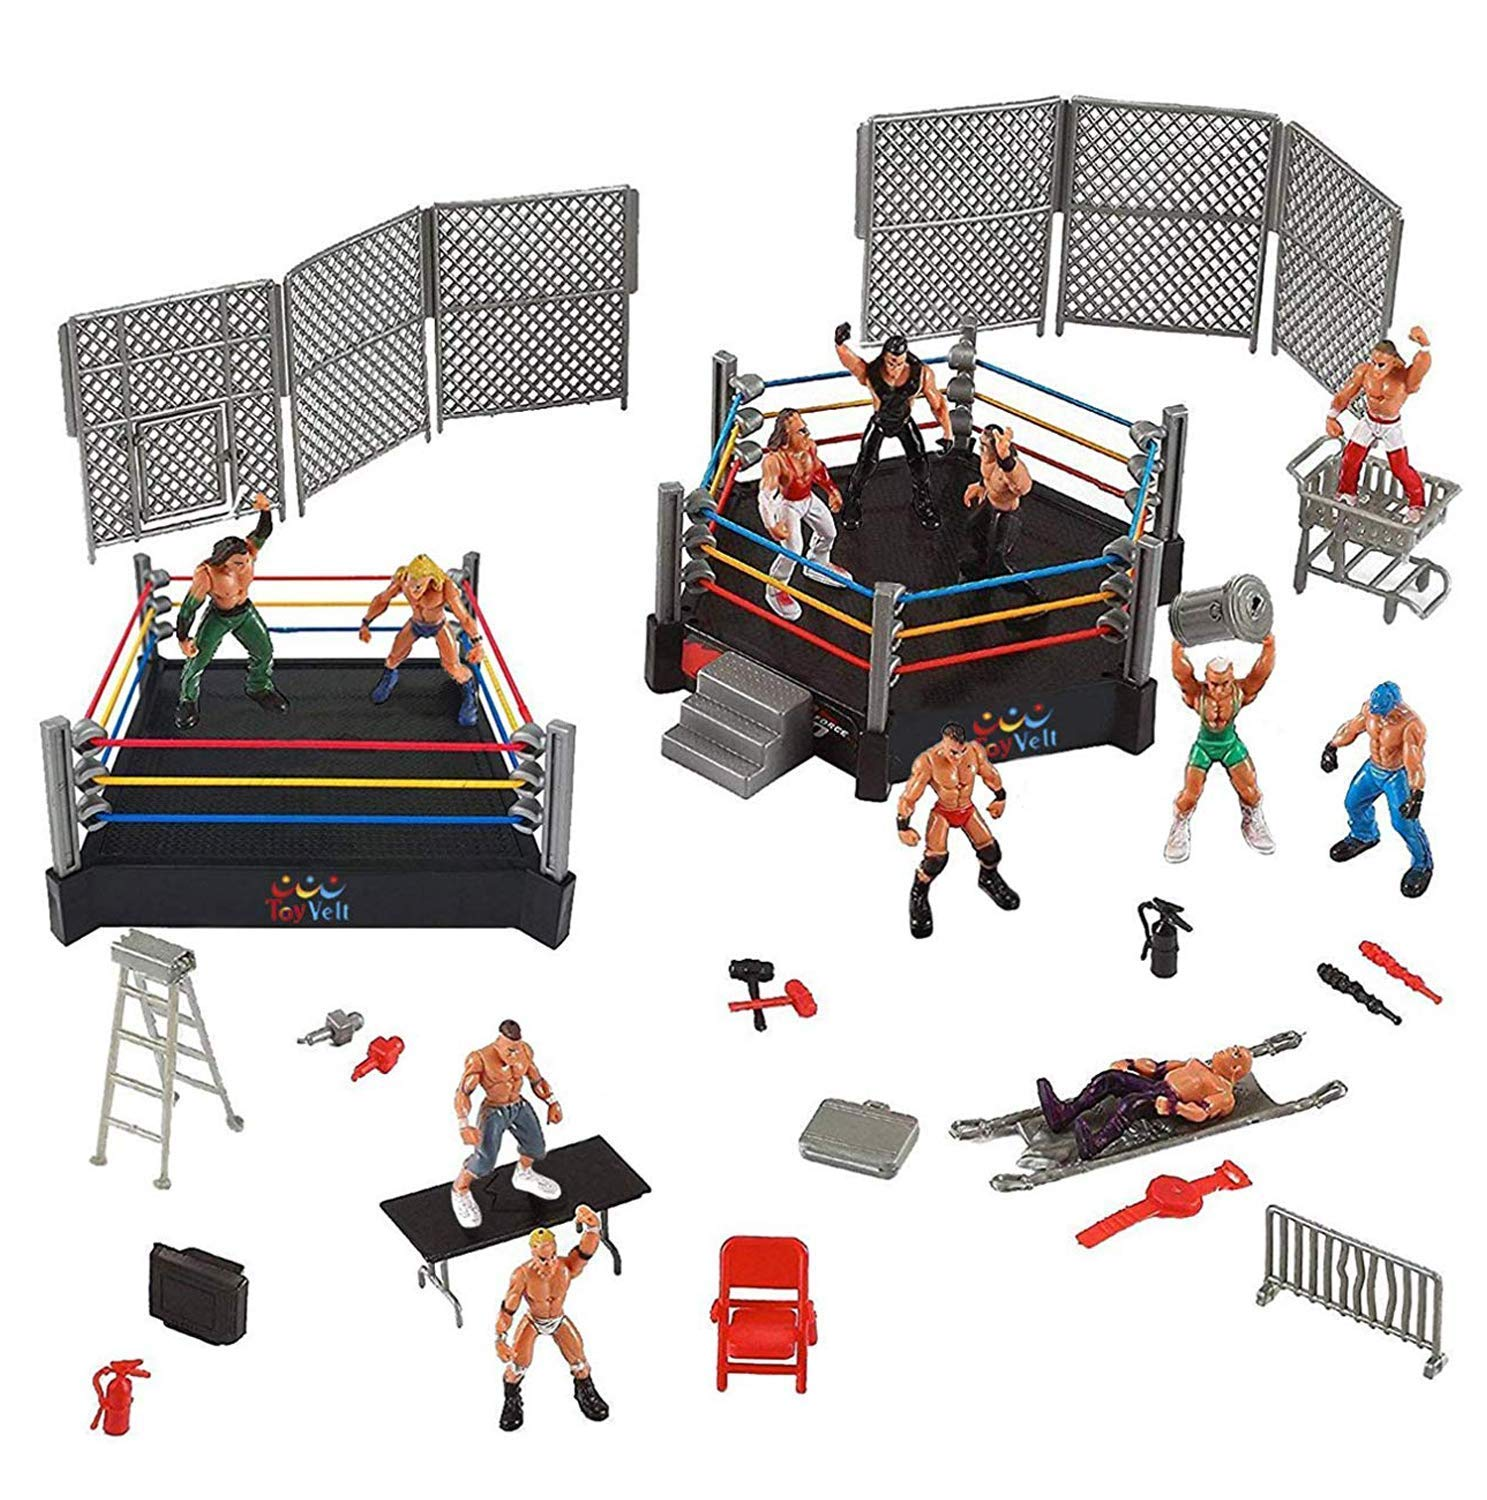 Ultimate 32-Piece Wrestling Playset for Kids   WWE Wrestler Warriors Toys with Ring & Realistic Accessories   Fun Miniature Fighting Action Figures   Includes 2 Rings   Idea